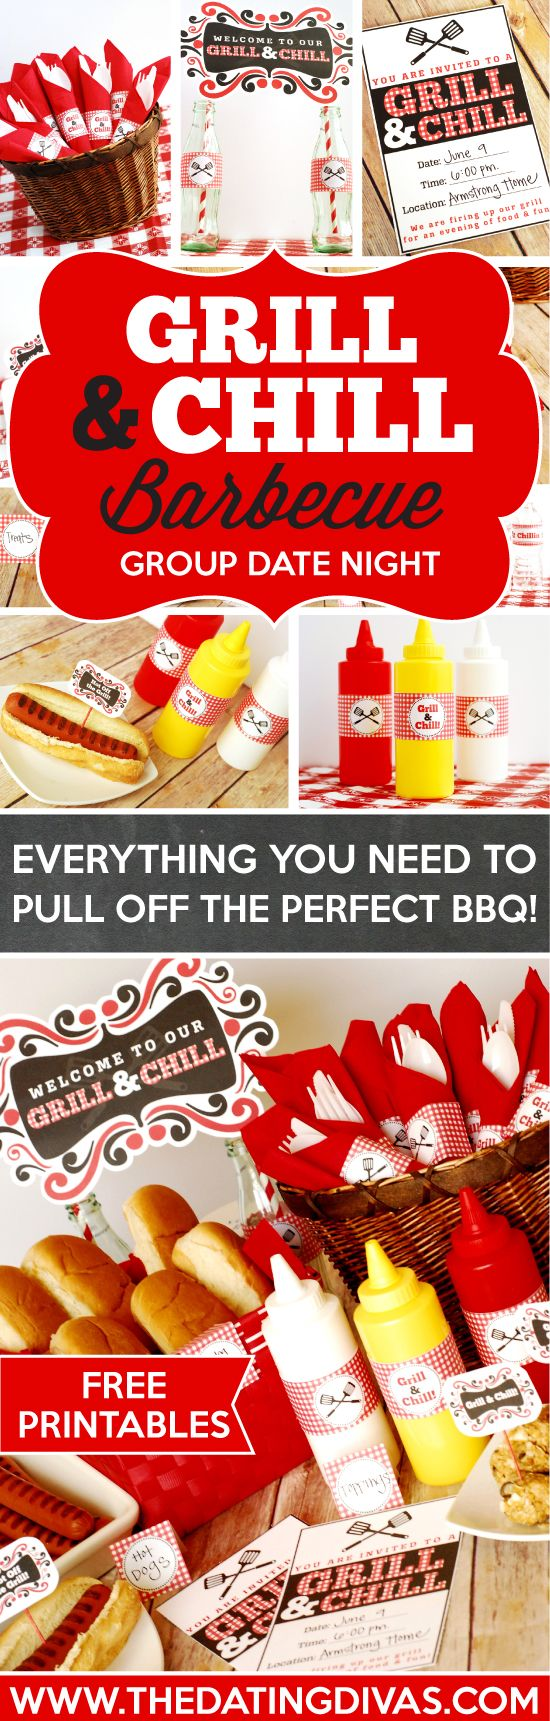 Everything you need to pull of the perfect BBQ for a group date night! Free printables! www.TheDatingDivas.com